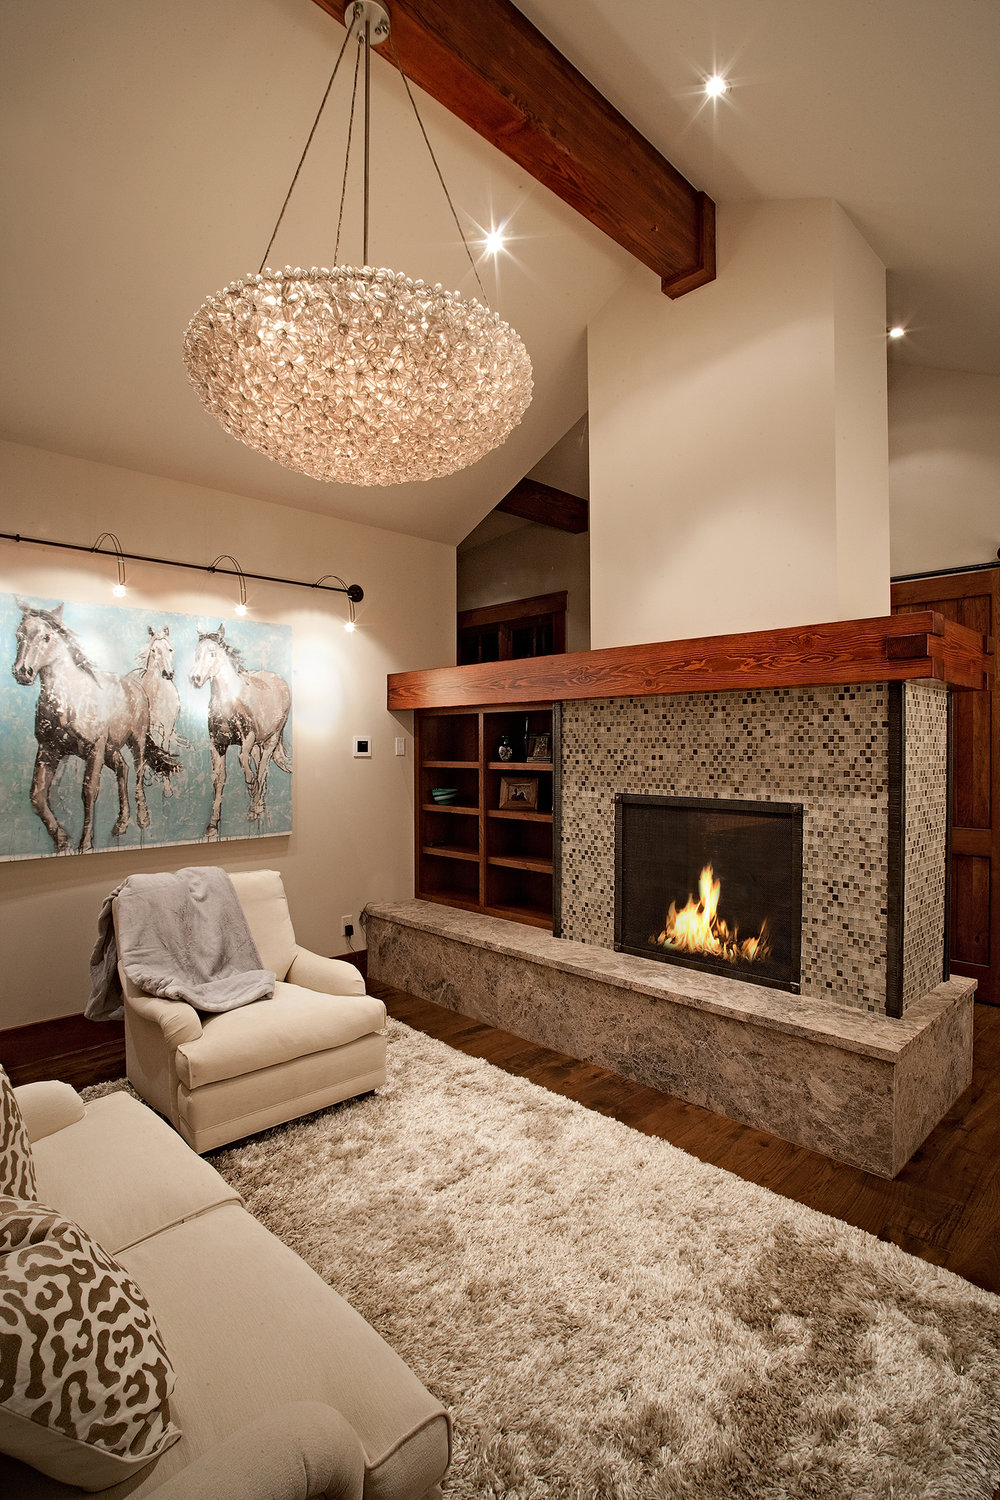 Lot 77_Den_Fireplace_Chandelier.jpg